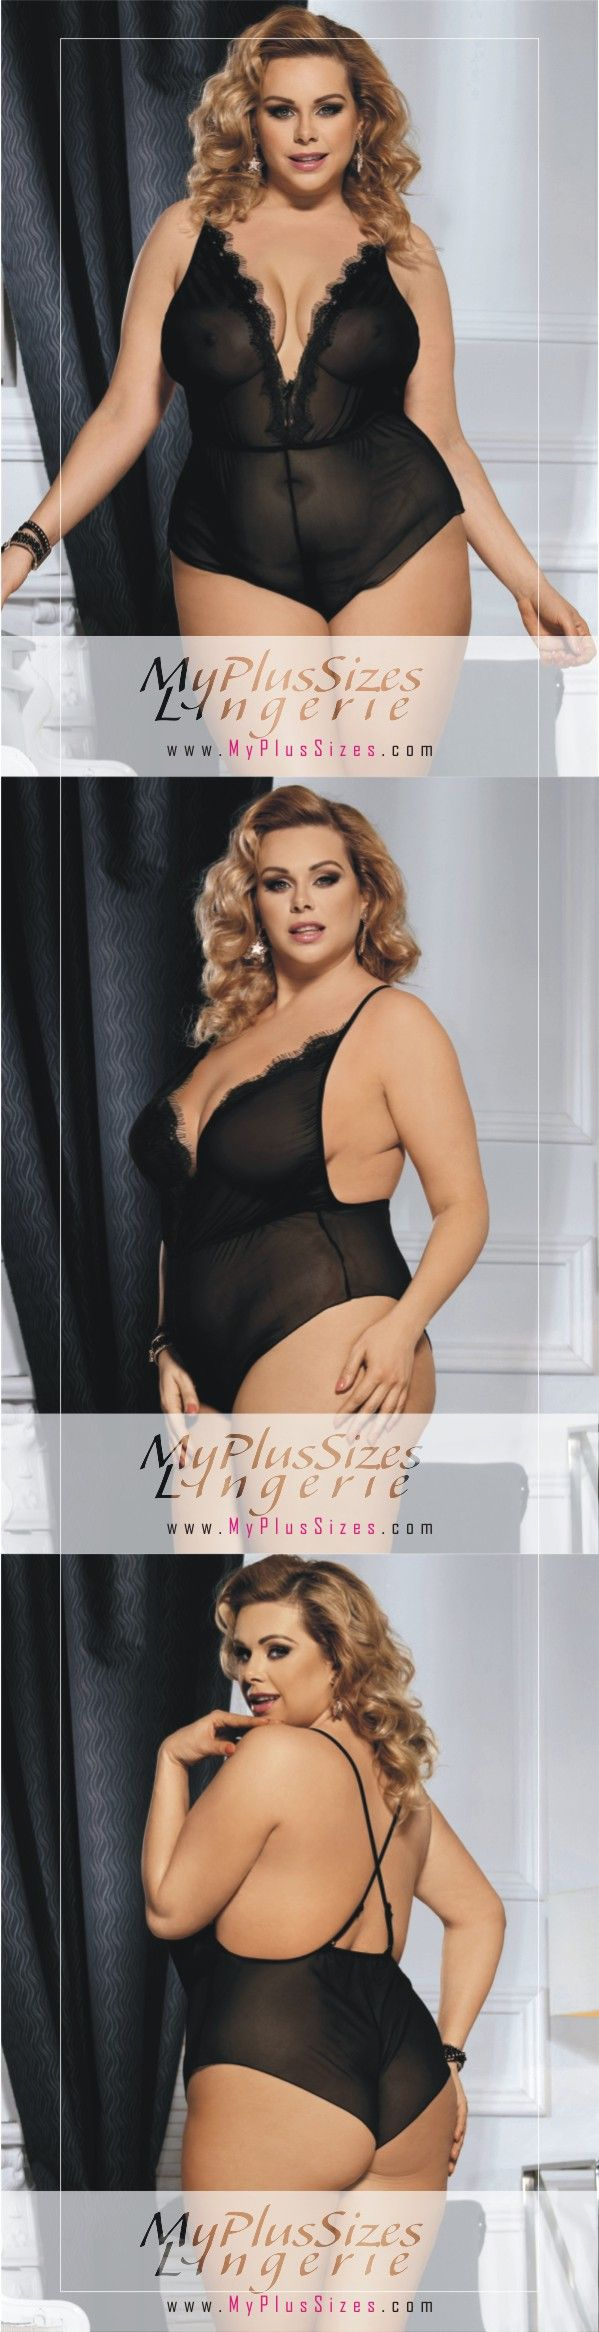 Beautiful plus size lingerie. Wholesale price #plussize, #plussizelingerie, #plussizediary, #plussizemodel #plussizefashion, #summeroutfitslingerie, #notkatemiddleton, #womenfashion, #afterpromdress, #falloutfitsidea